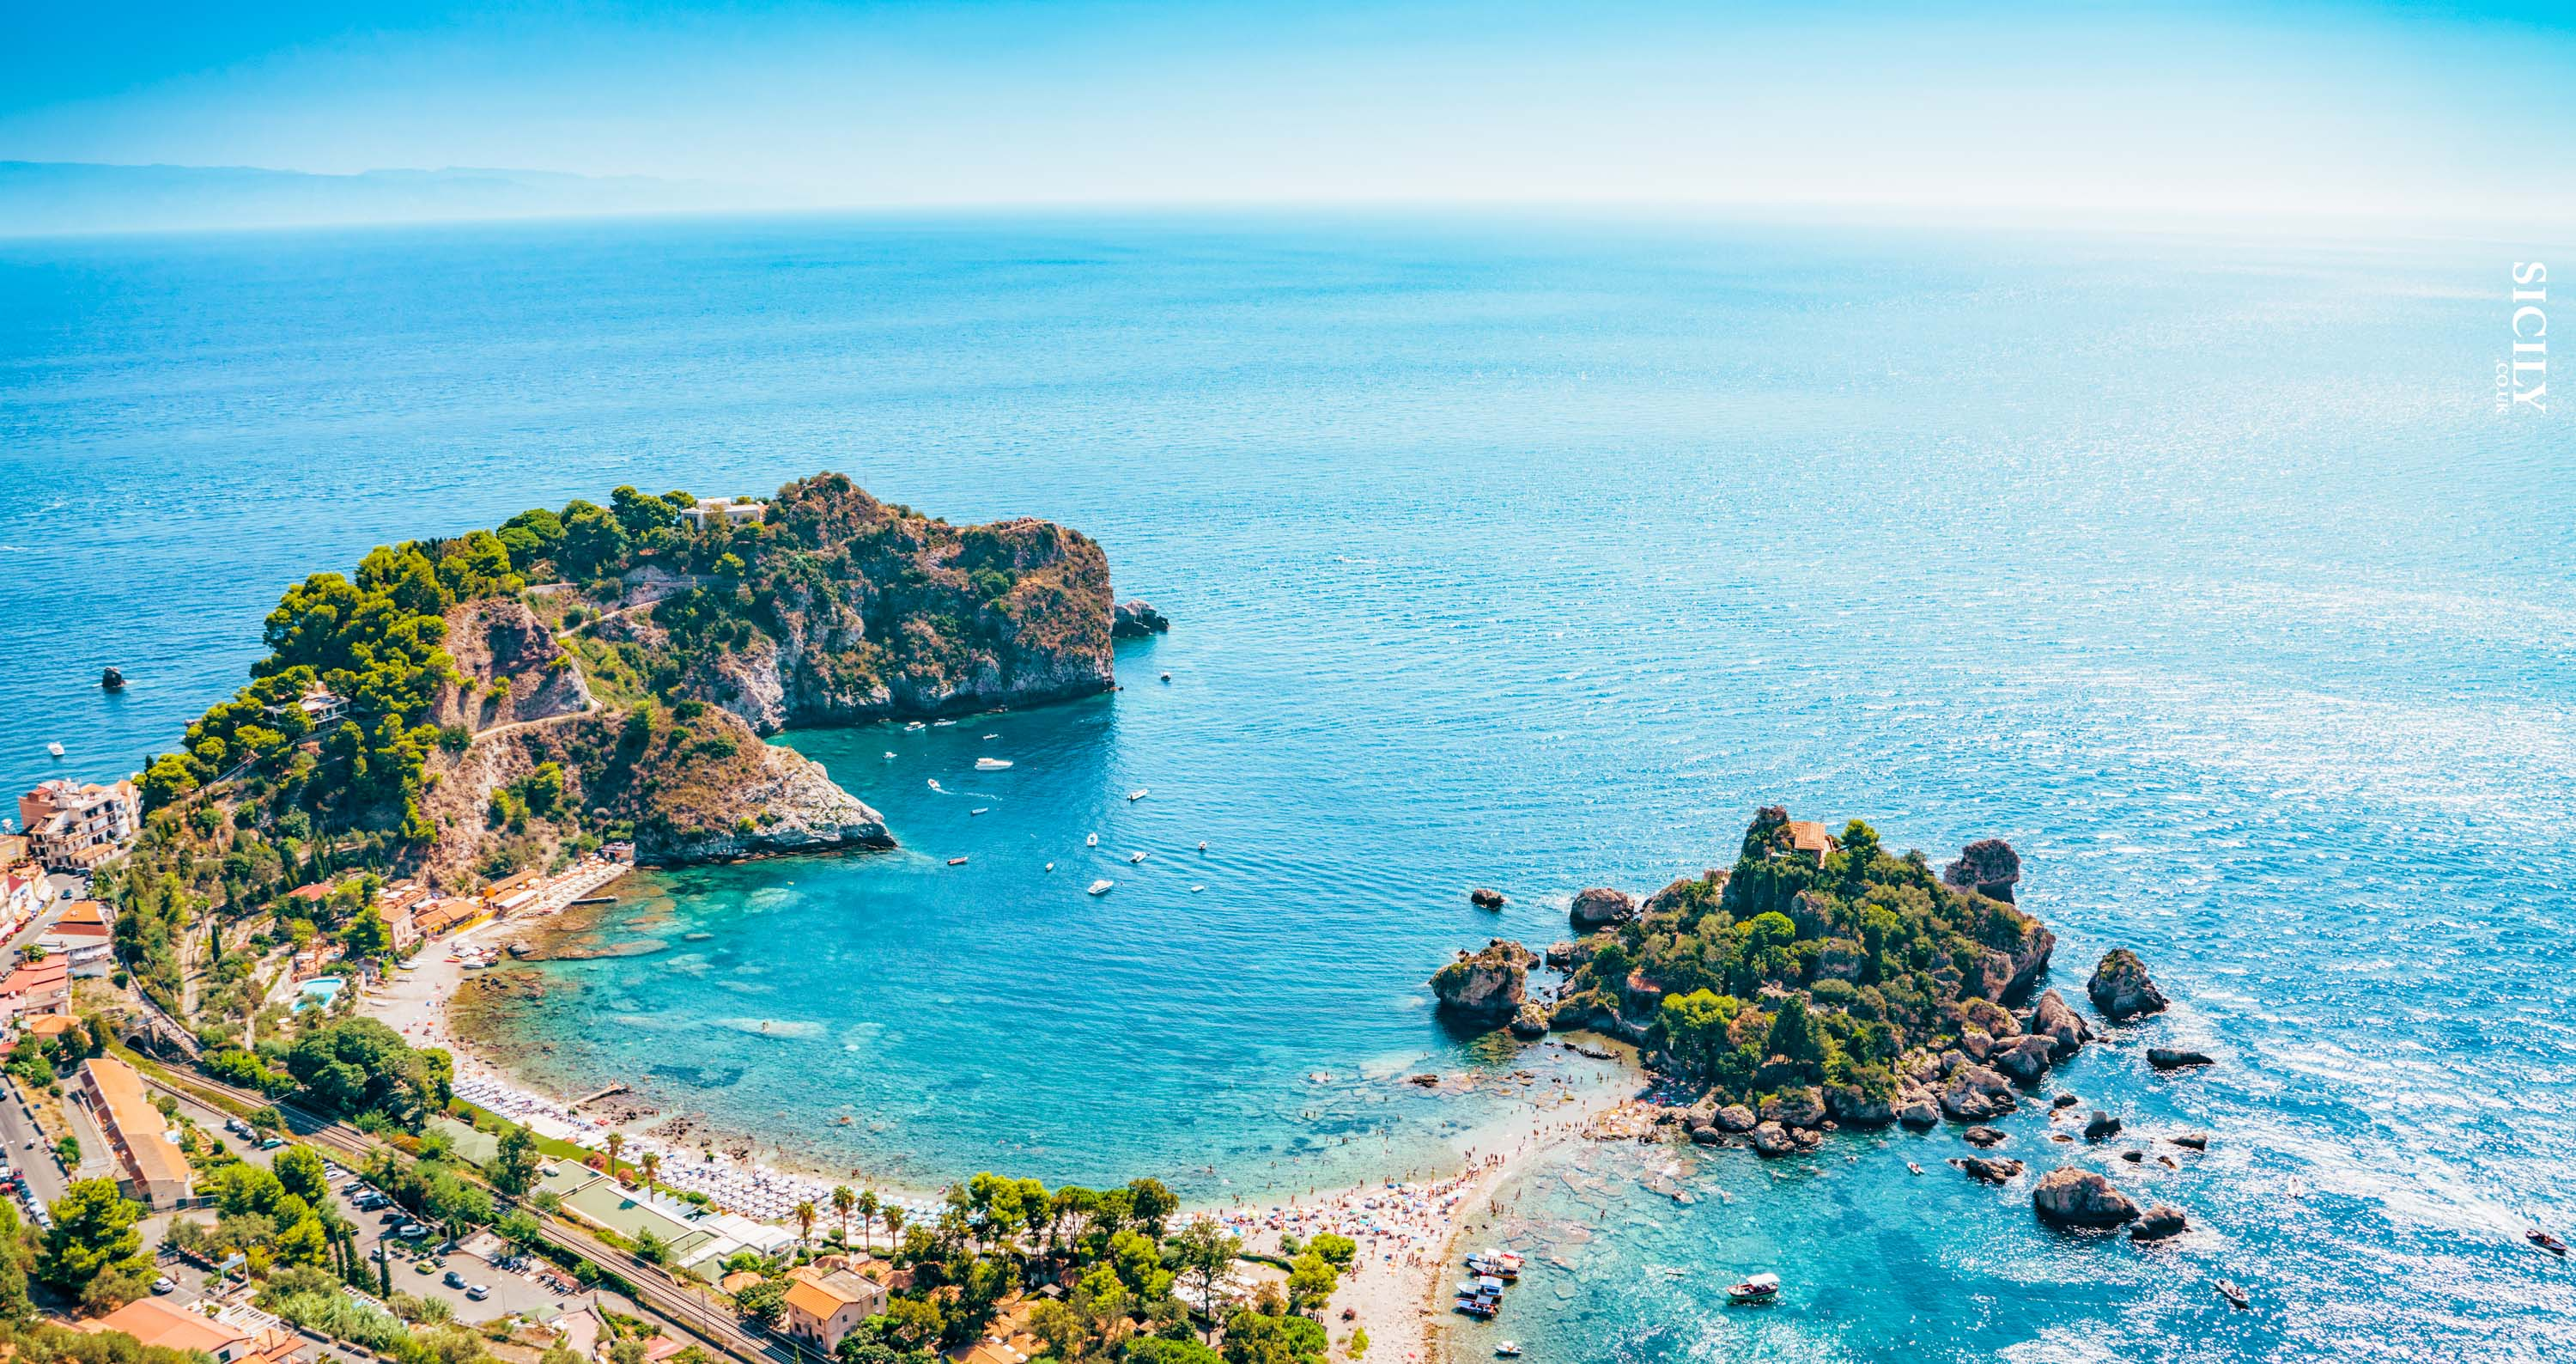 The Ionian Coast, Central and South Eastern Sicily - Sicily